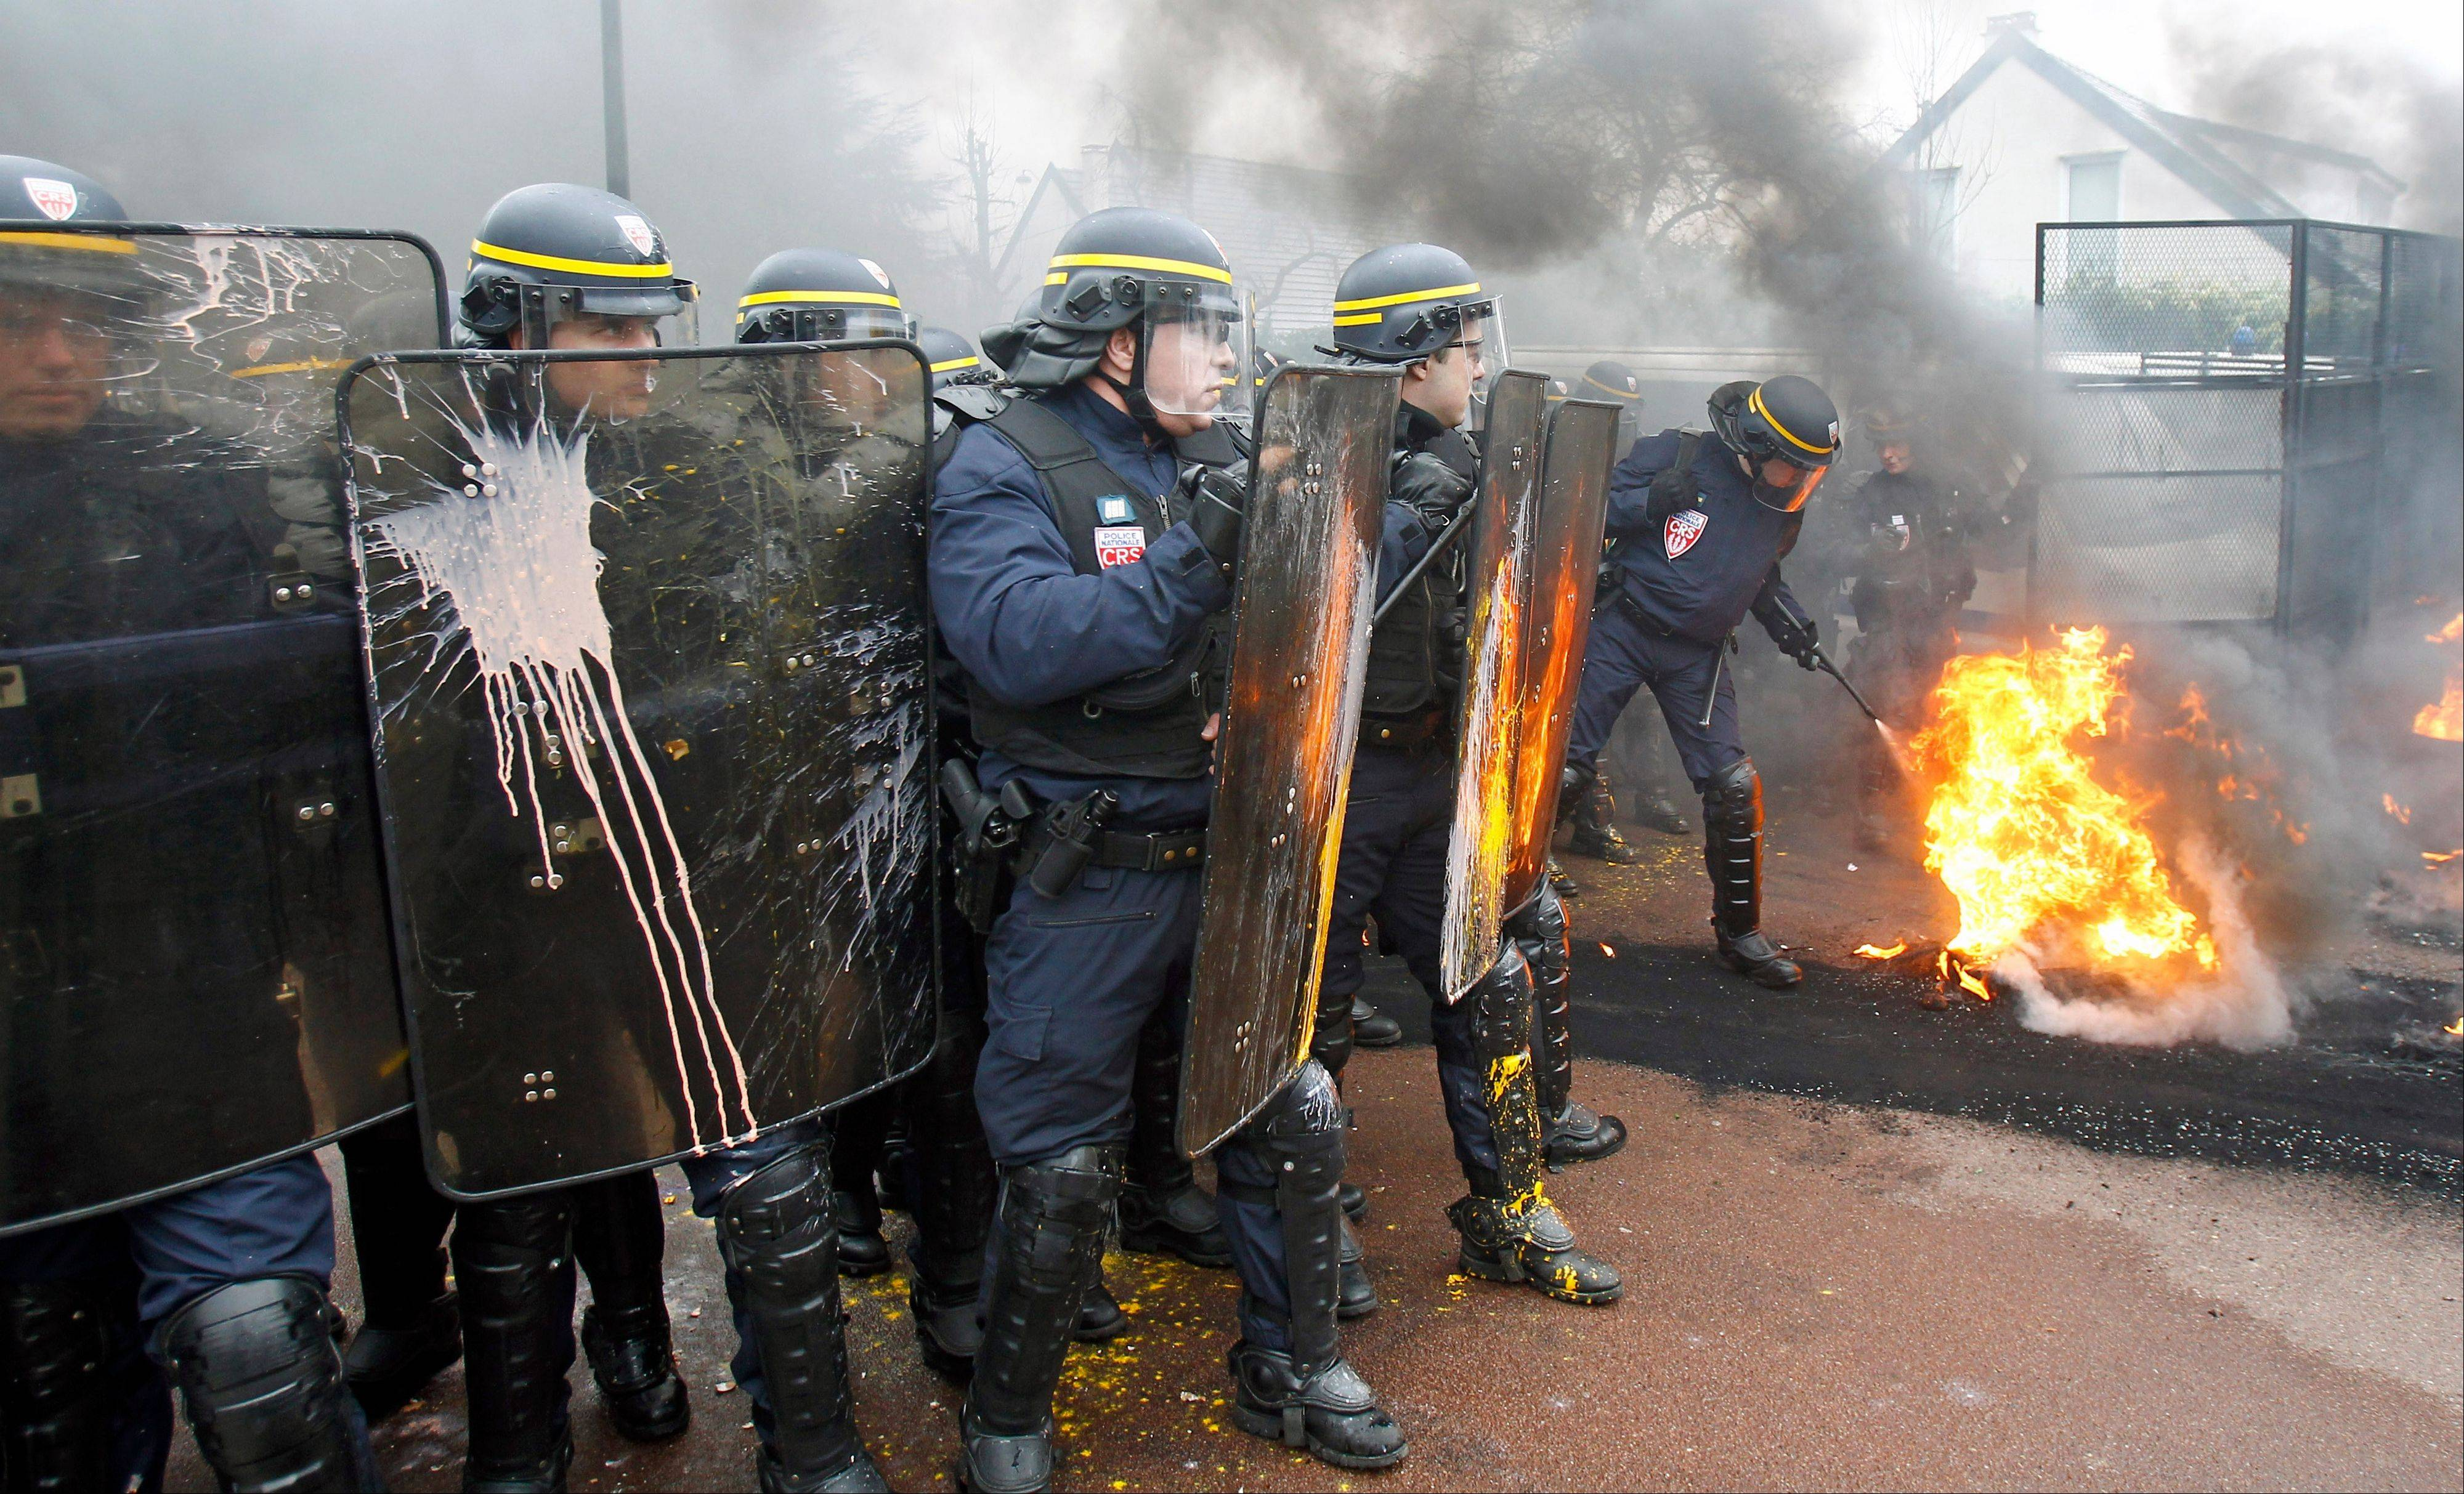 A riot police officer extinguishes burning tires during a demonstration by Goodyear workers against layoffs, at the Goodyear headquarters in Rueil Malmaison, west of Paris.